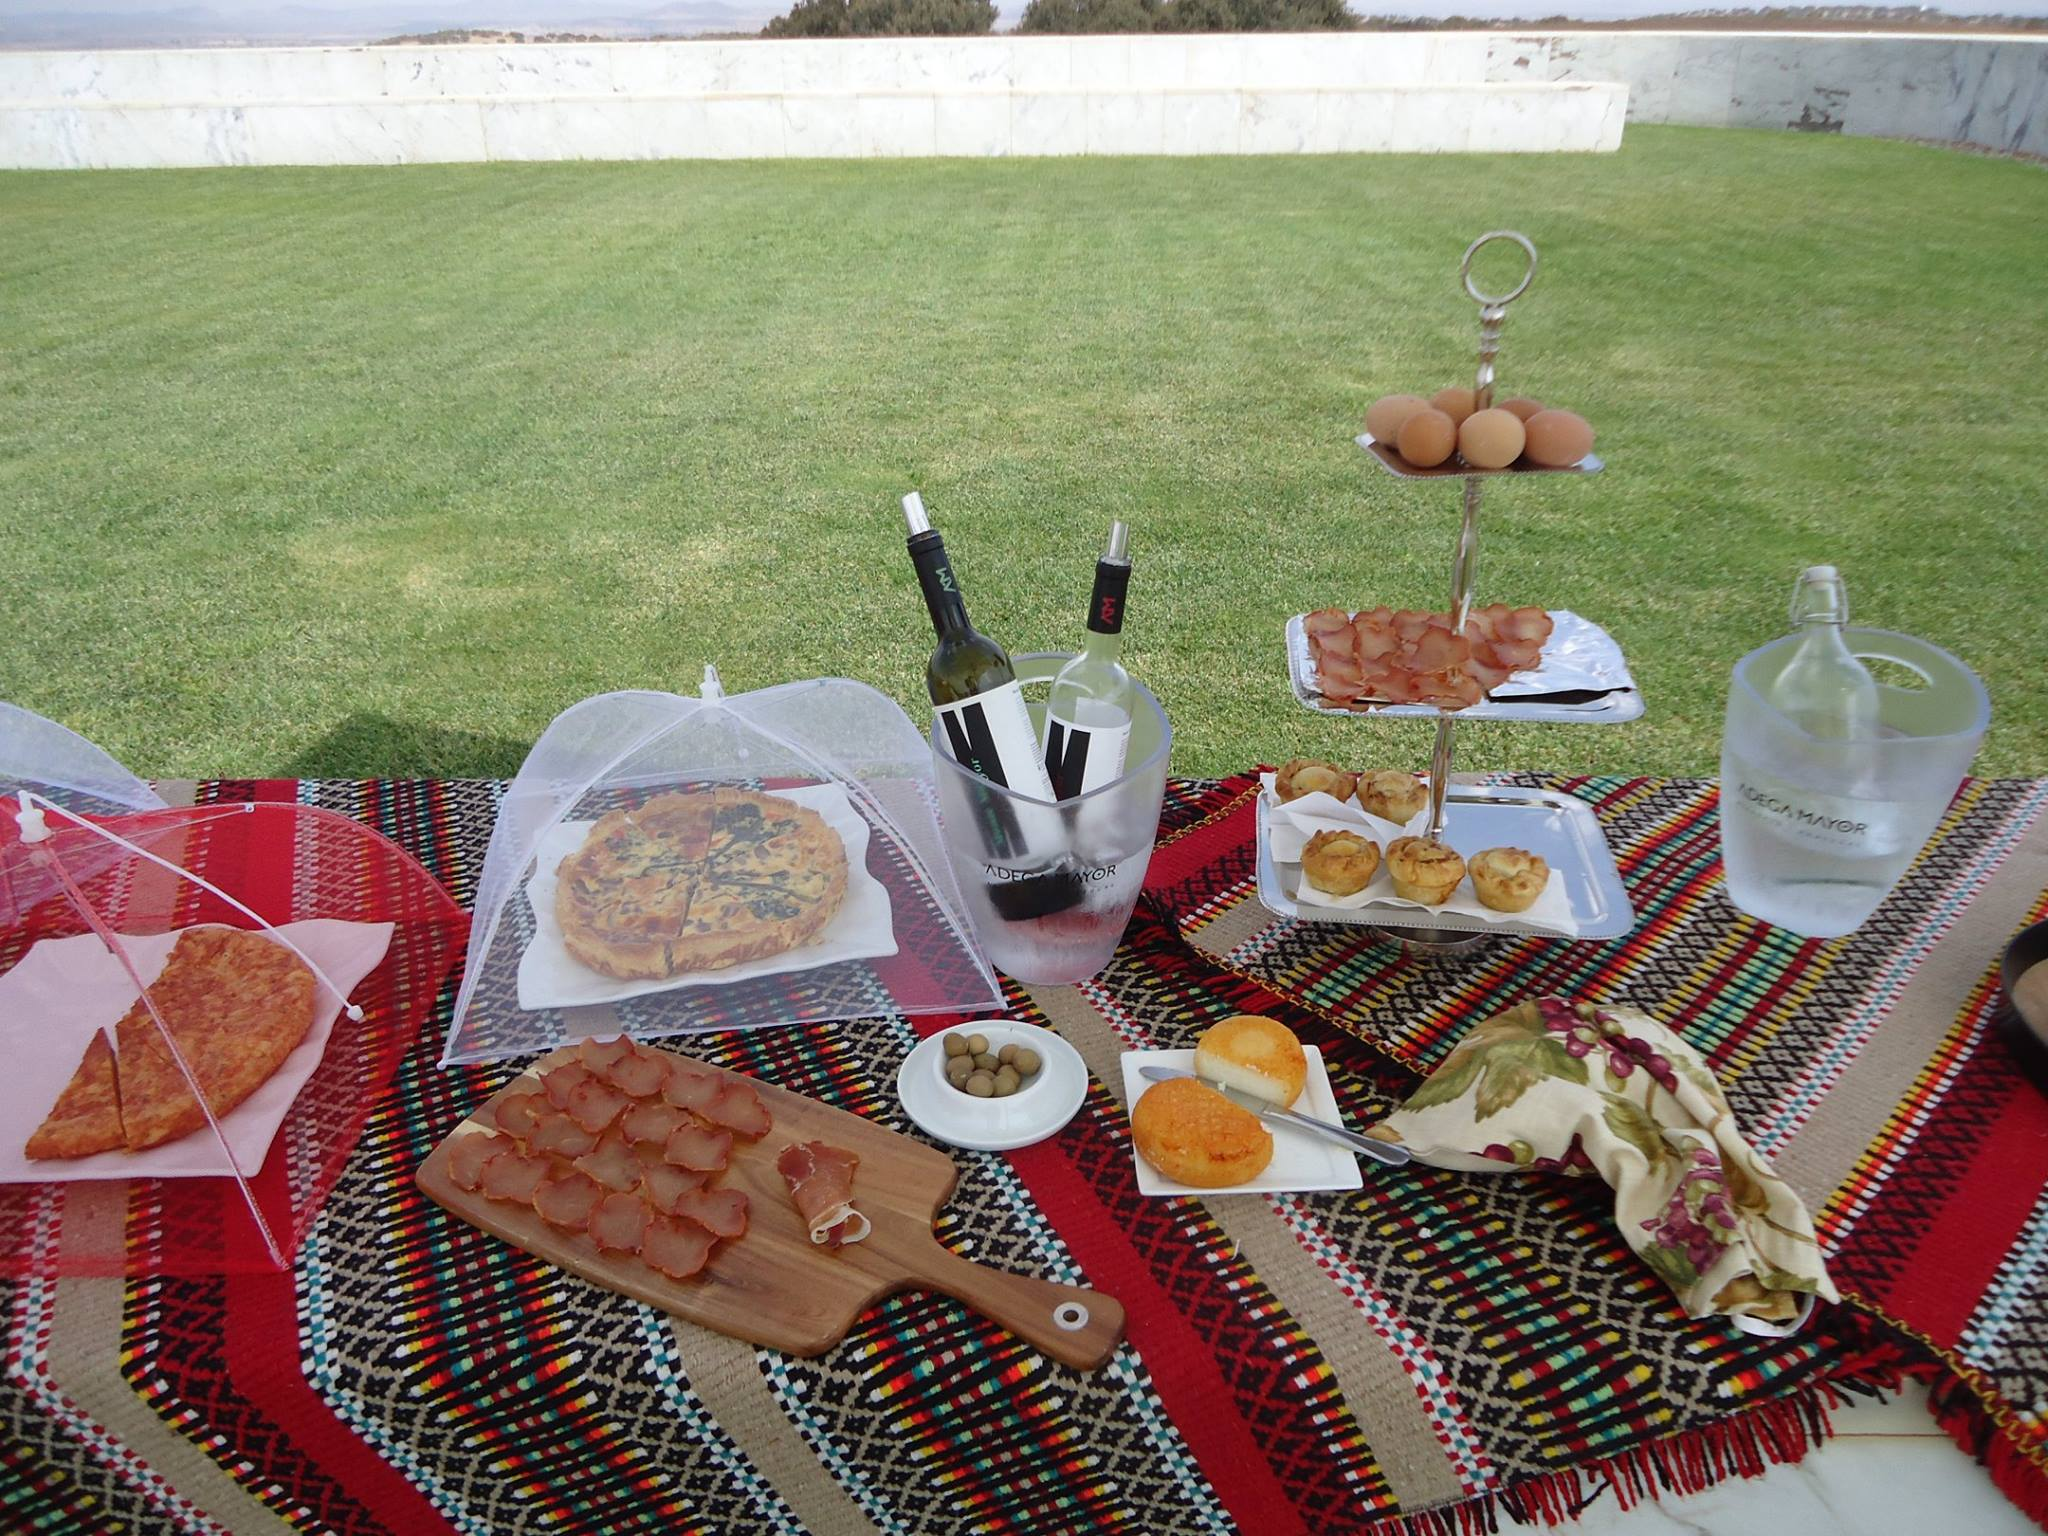 picnic, winery, vineyard, alentejo, adega mayor